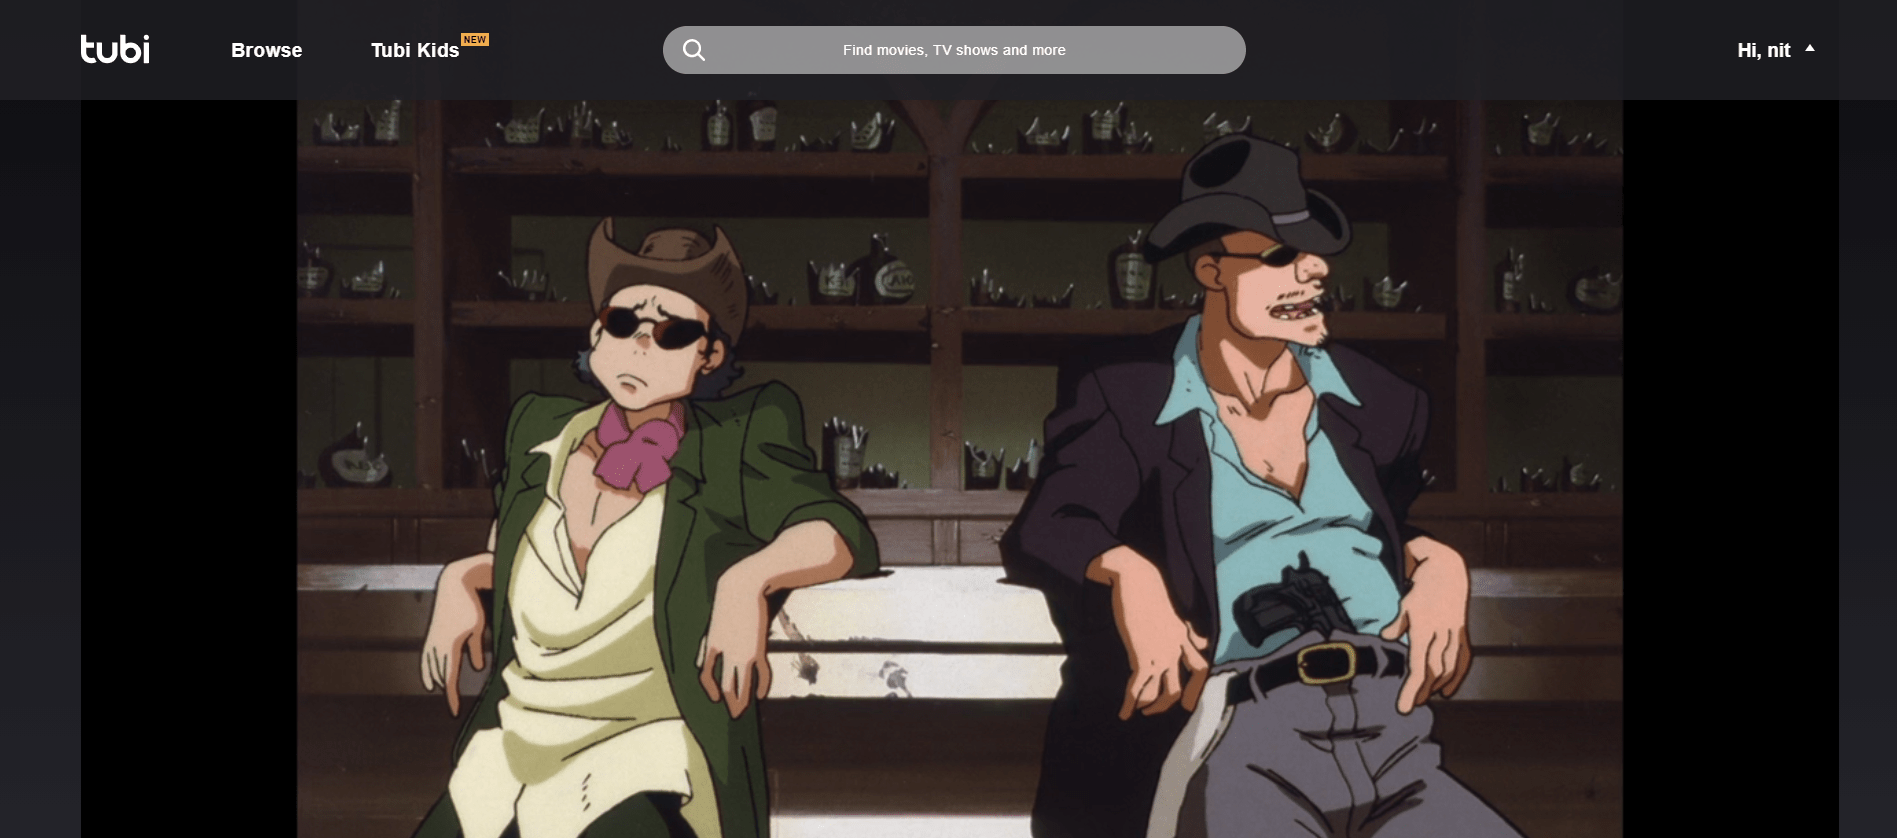 https://mrnoob.net/wp-content/uploads/2020/09/cowboy-bebop-working-on-tubi-tv-with-proton-vpn-1.png